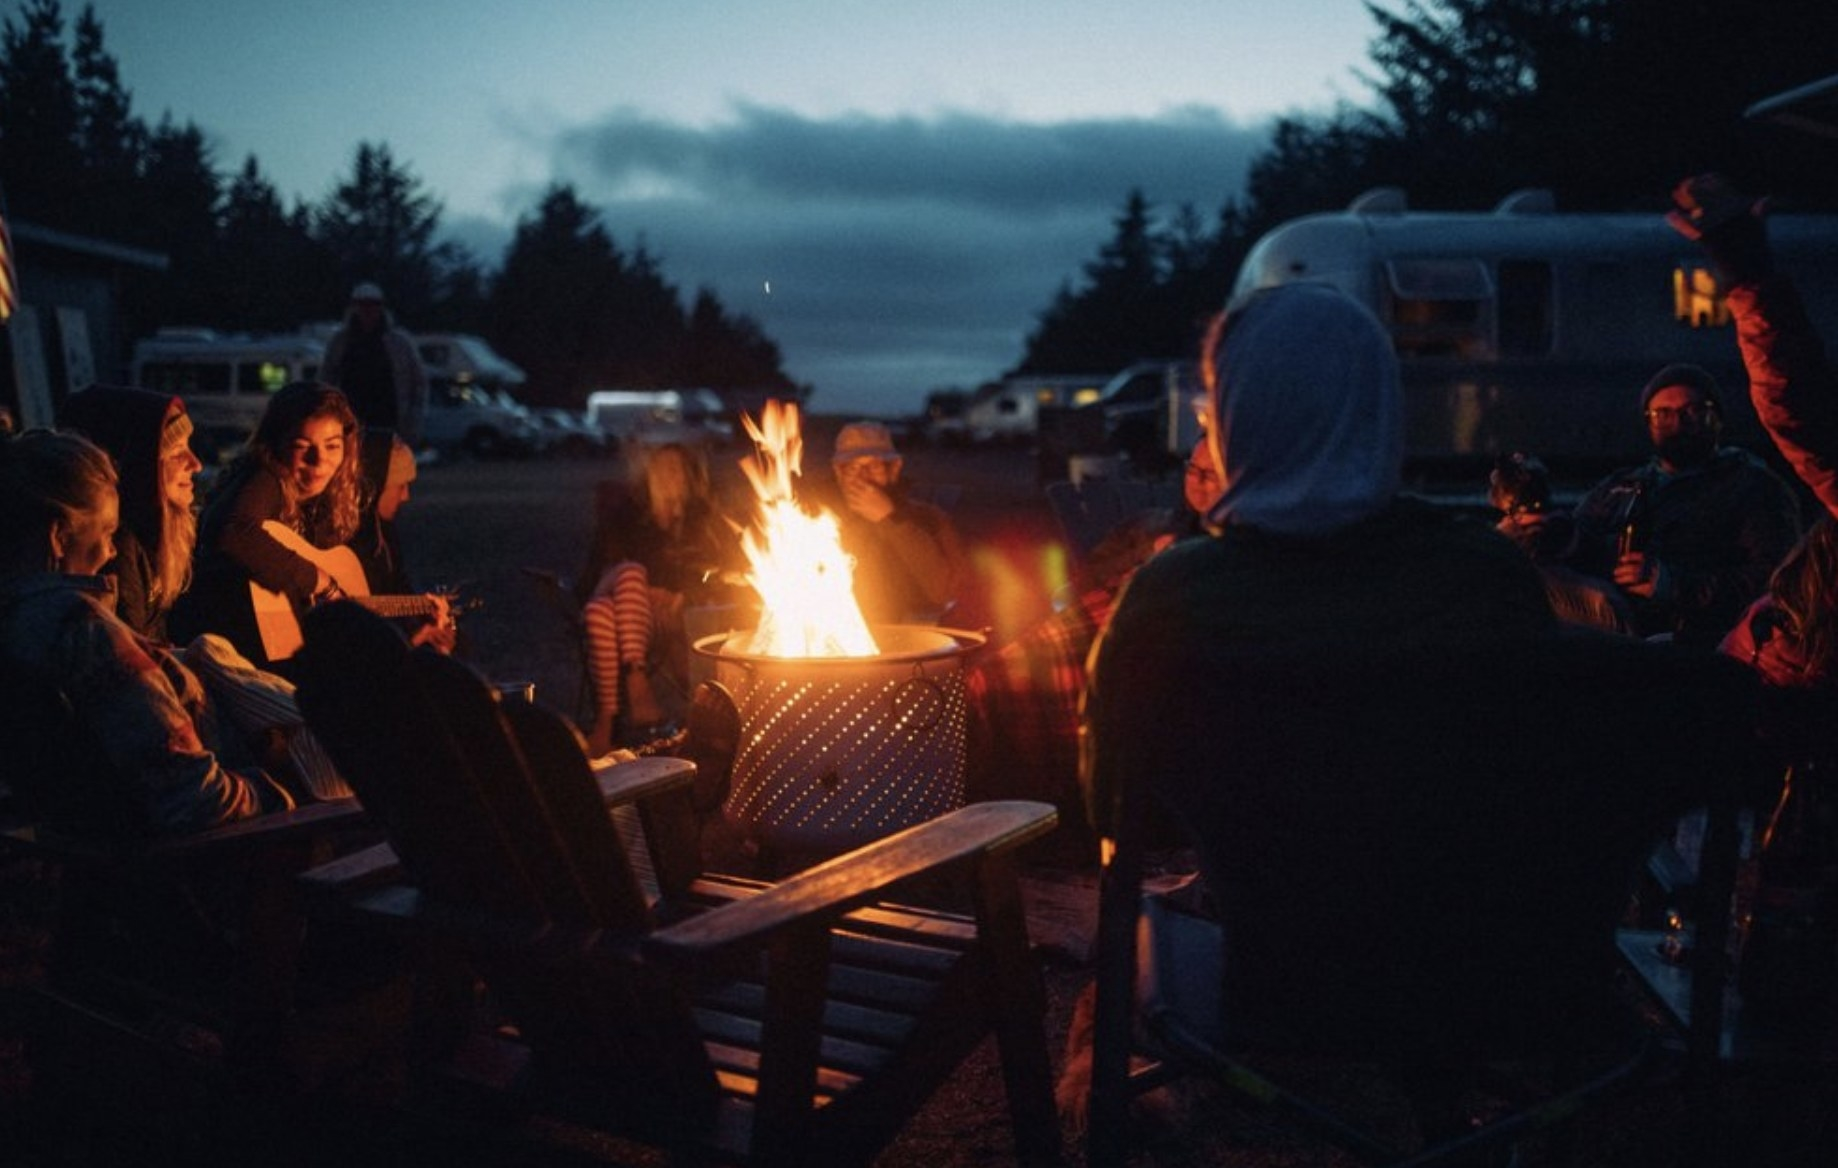 People gathering around a campfire